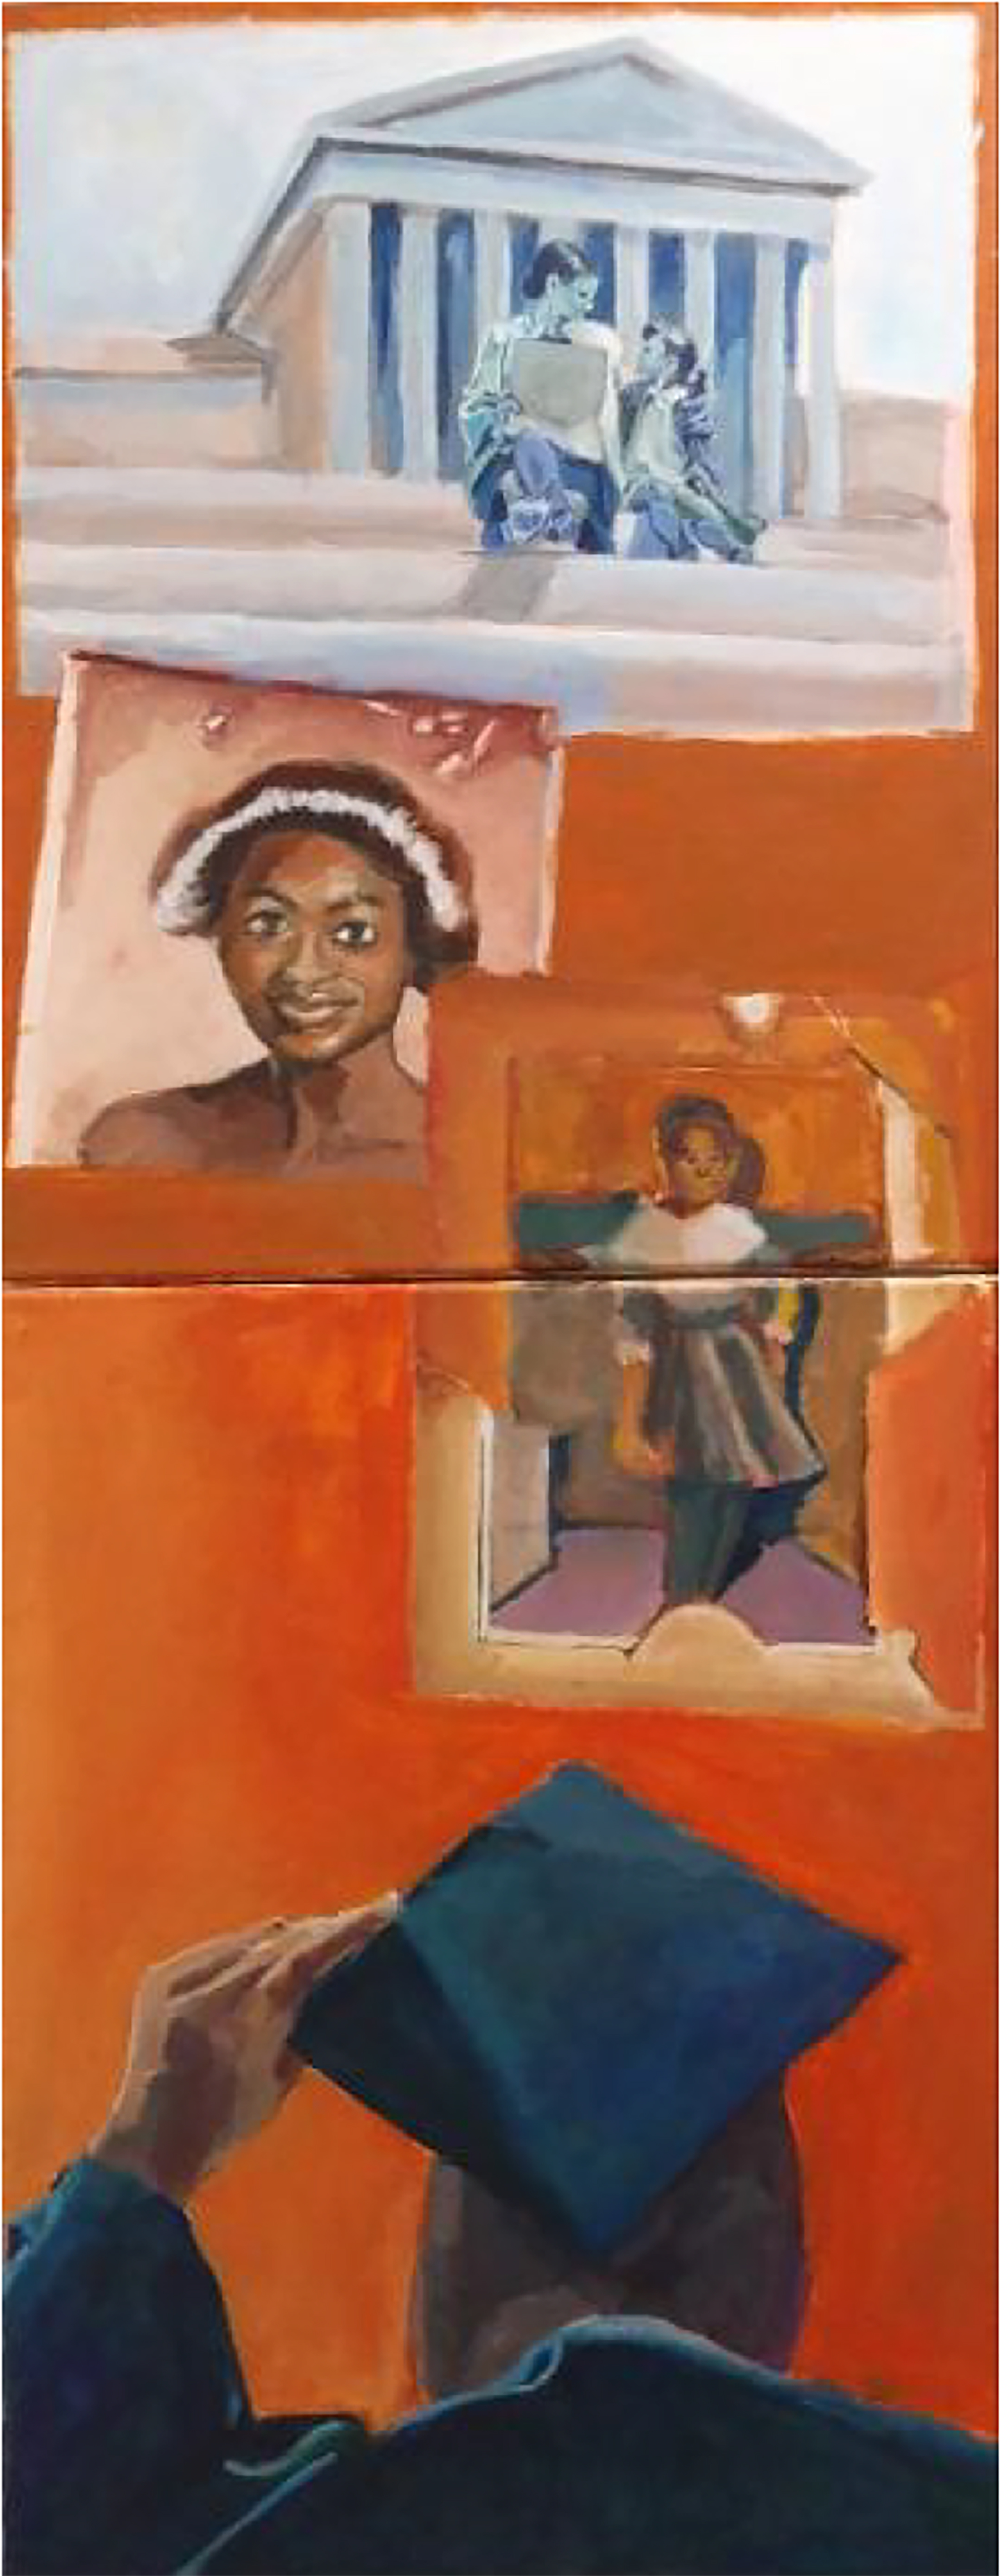 Painting with a graduate seen from behind at the bottom of the canvas looking up an orange wall that is topped with a columned building